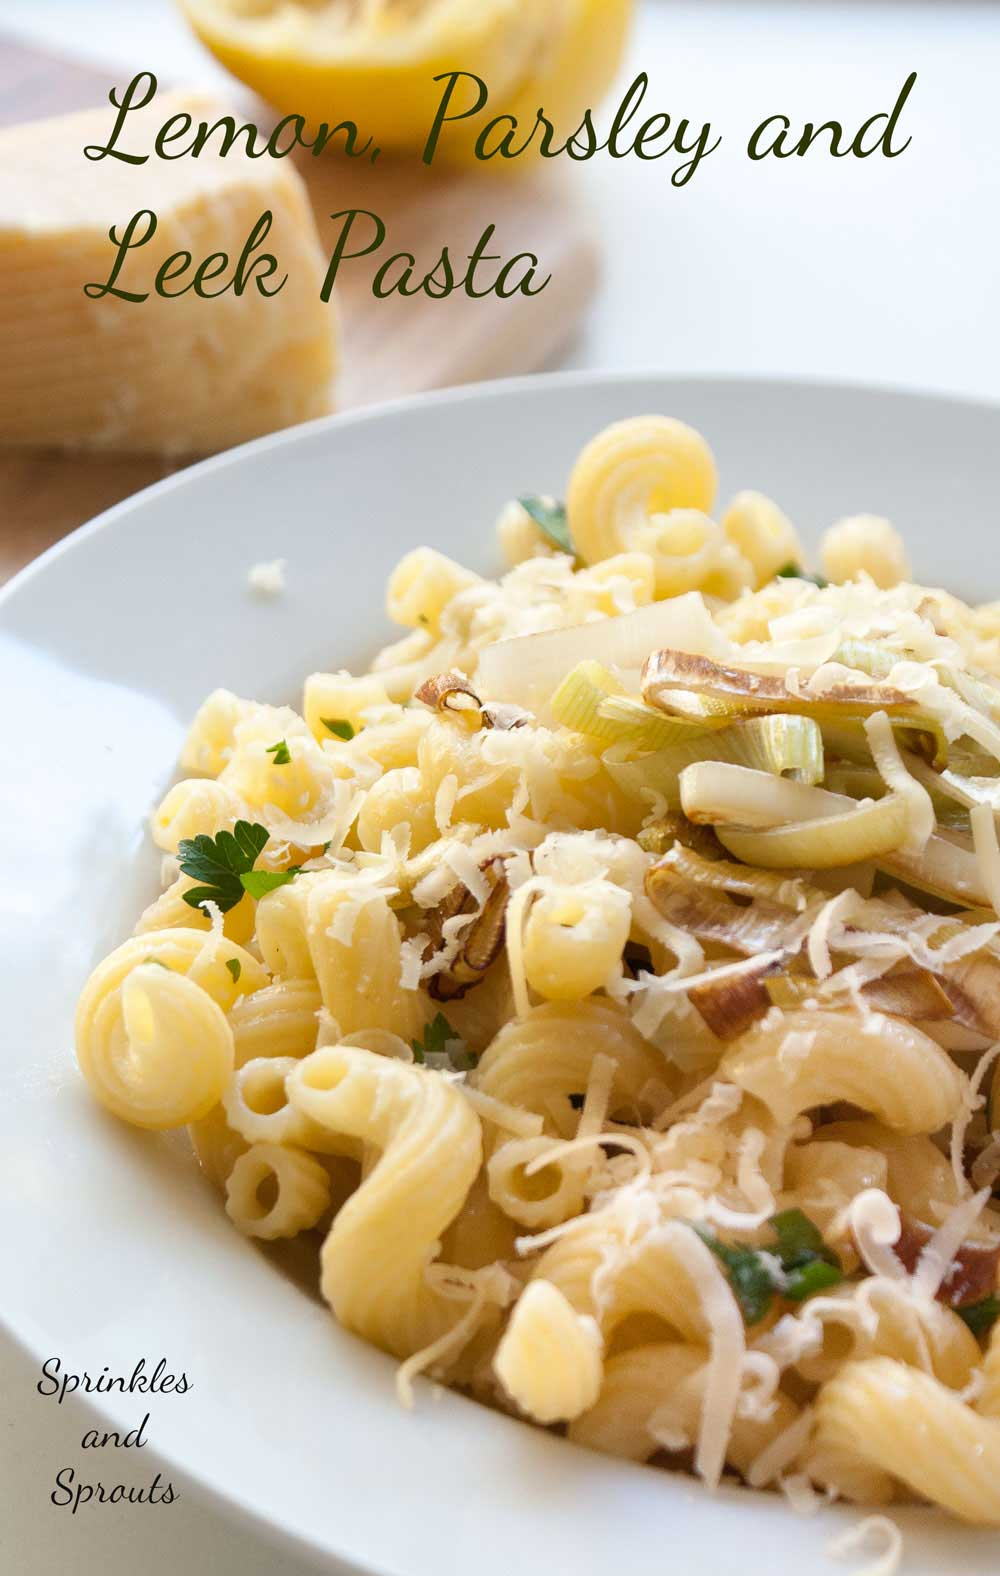 Lemon, Parsley and Leek Pasta. A delicious and simple vegetarian pasta recipe.